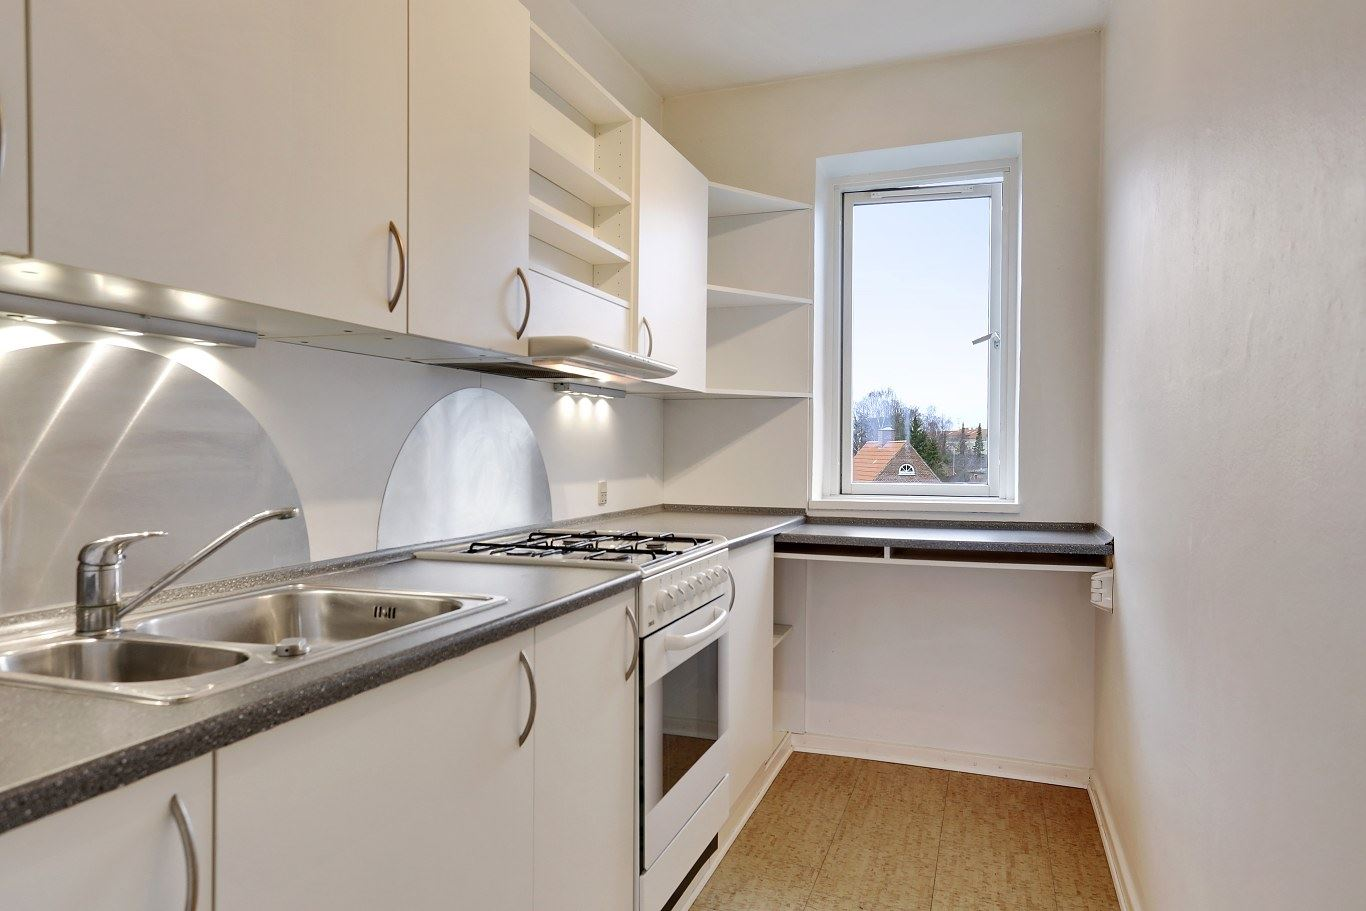 Folehaven 134 2 th, 2500 Valby